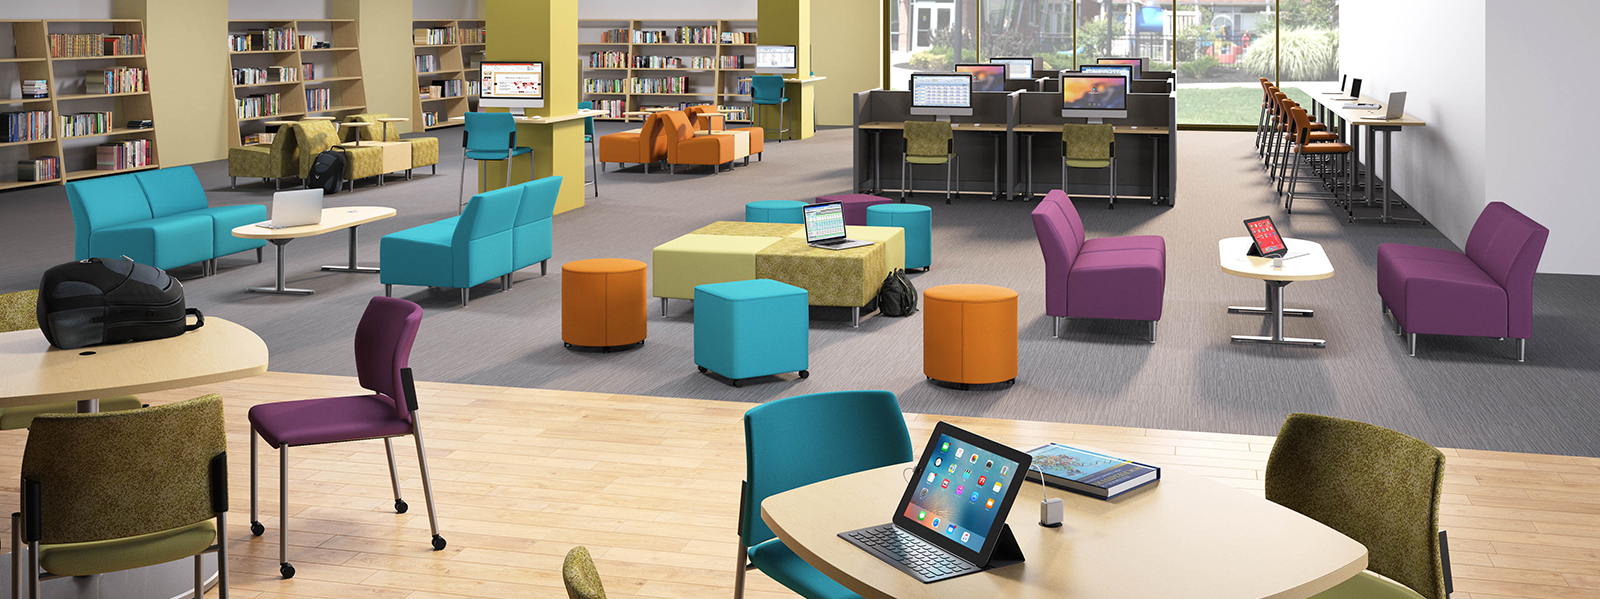 3D rendering of a clean and bright learning space